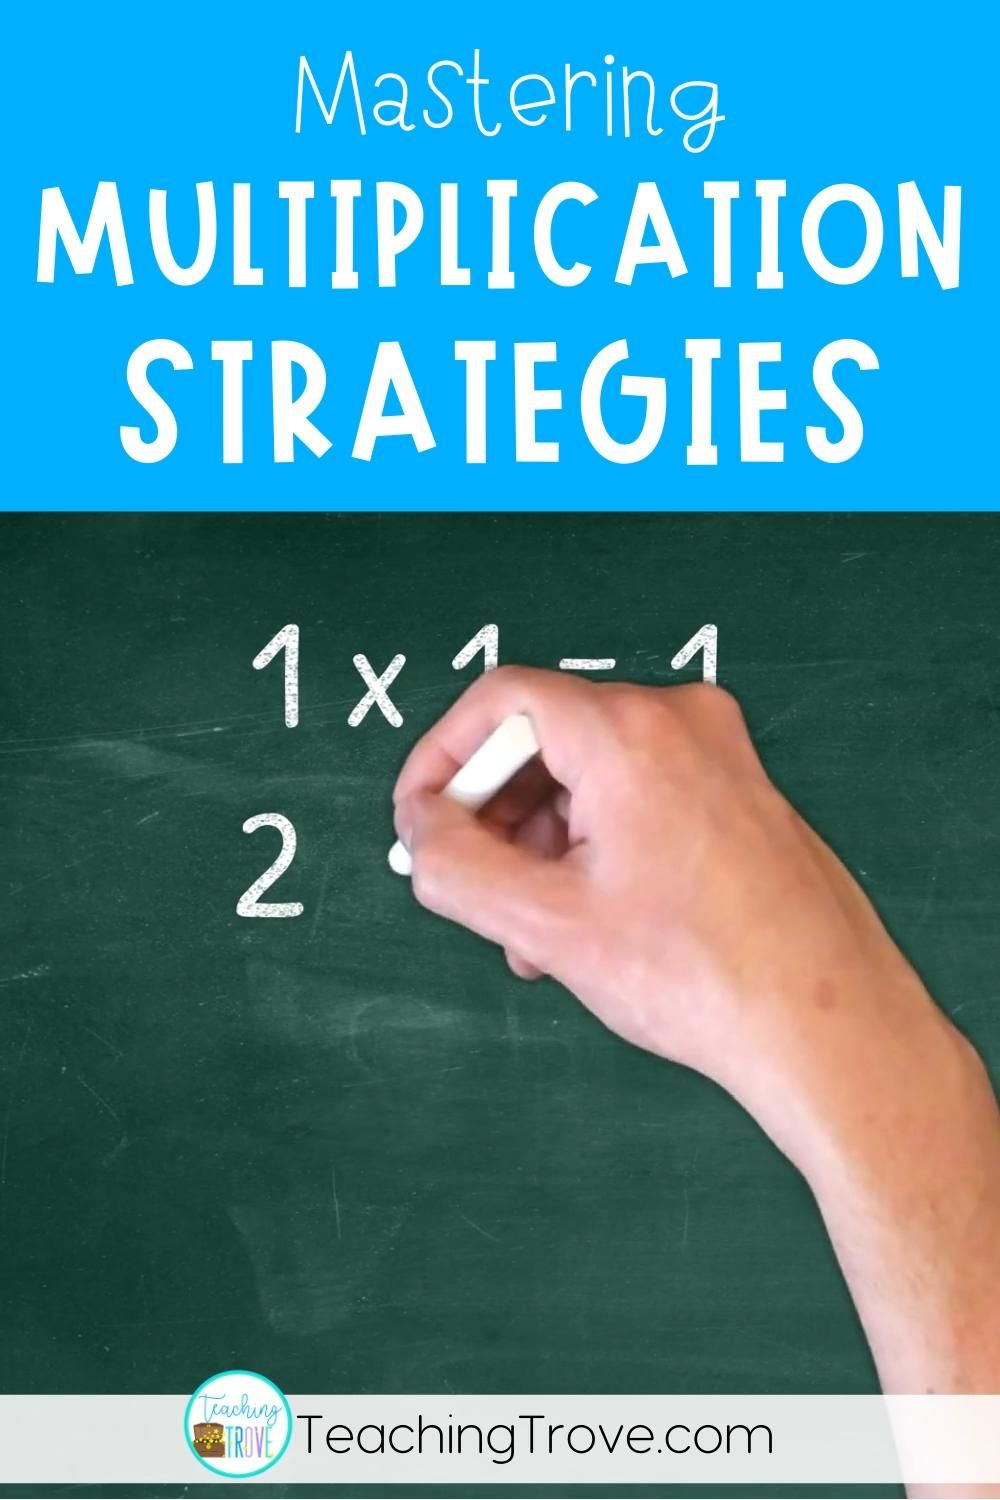 Engage And Motivate With Multiplication Activities That Are Fun Video Video In 2020 Multiplication And Division Practice Math Centers Multiplication Activities Column addition carrying over video